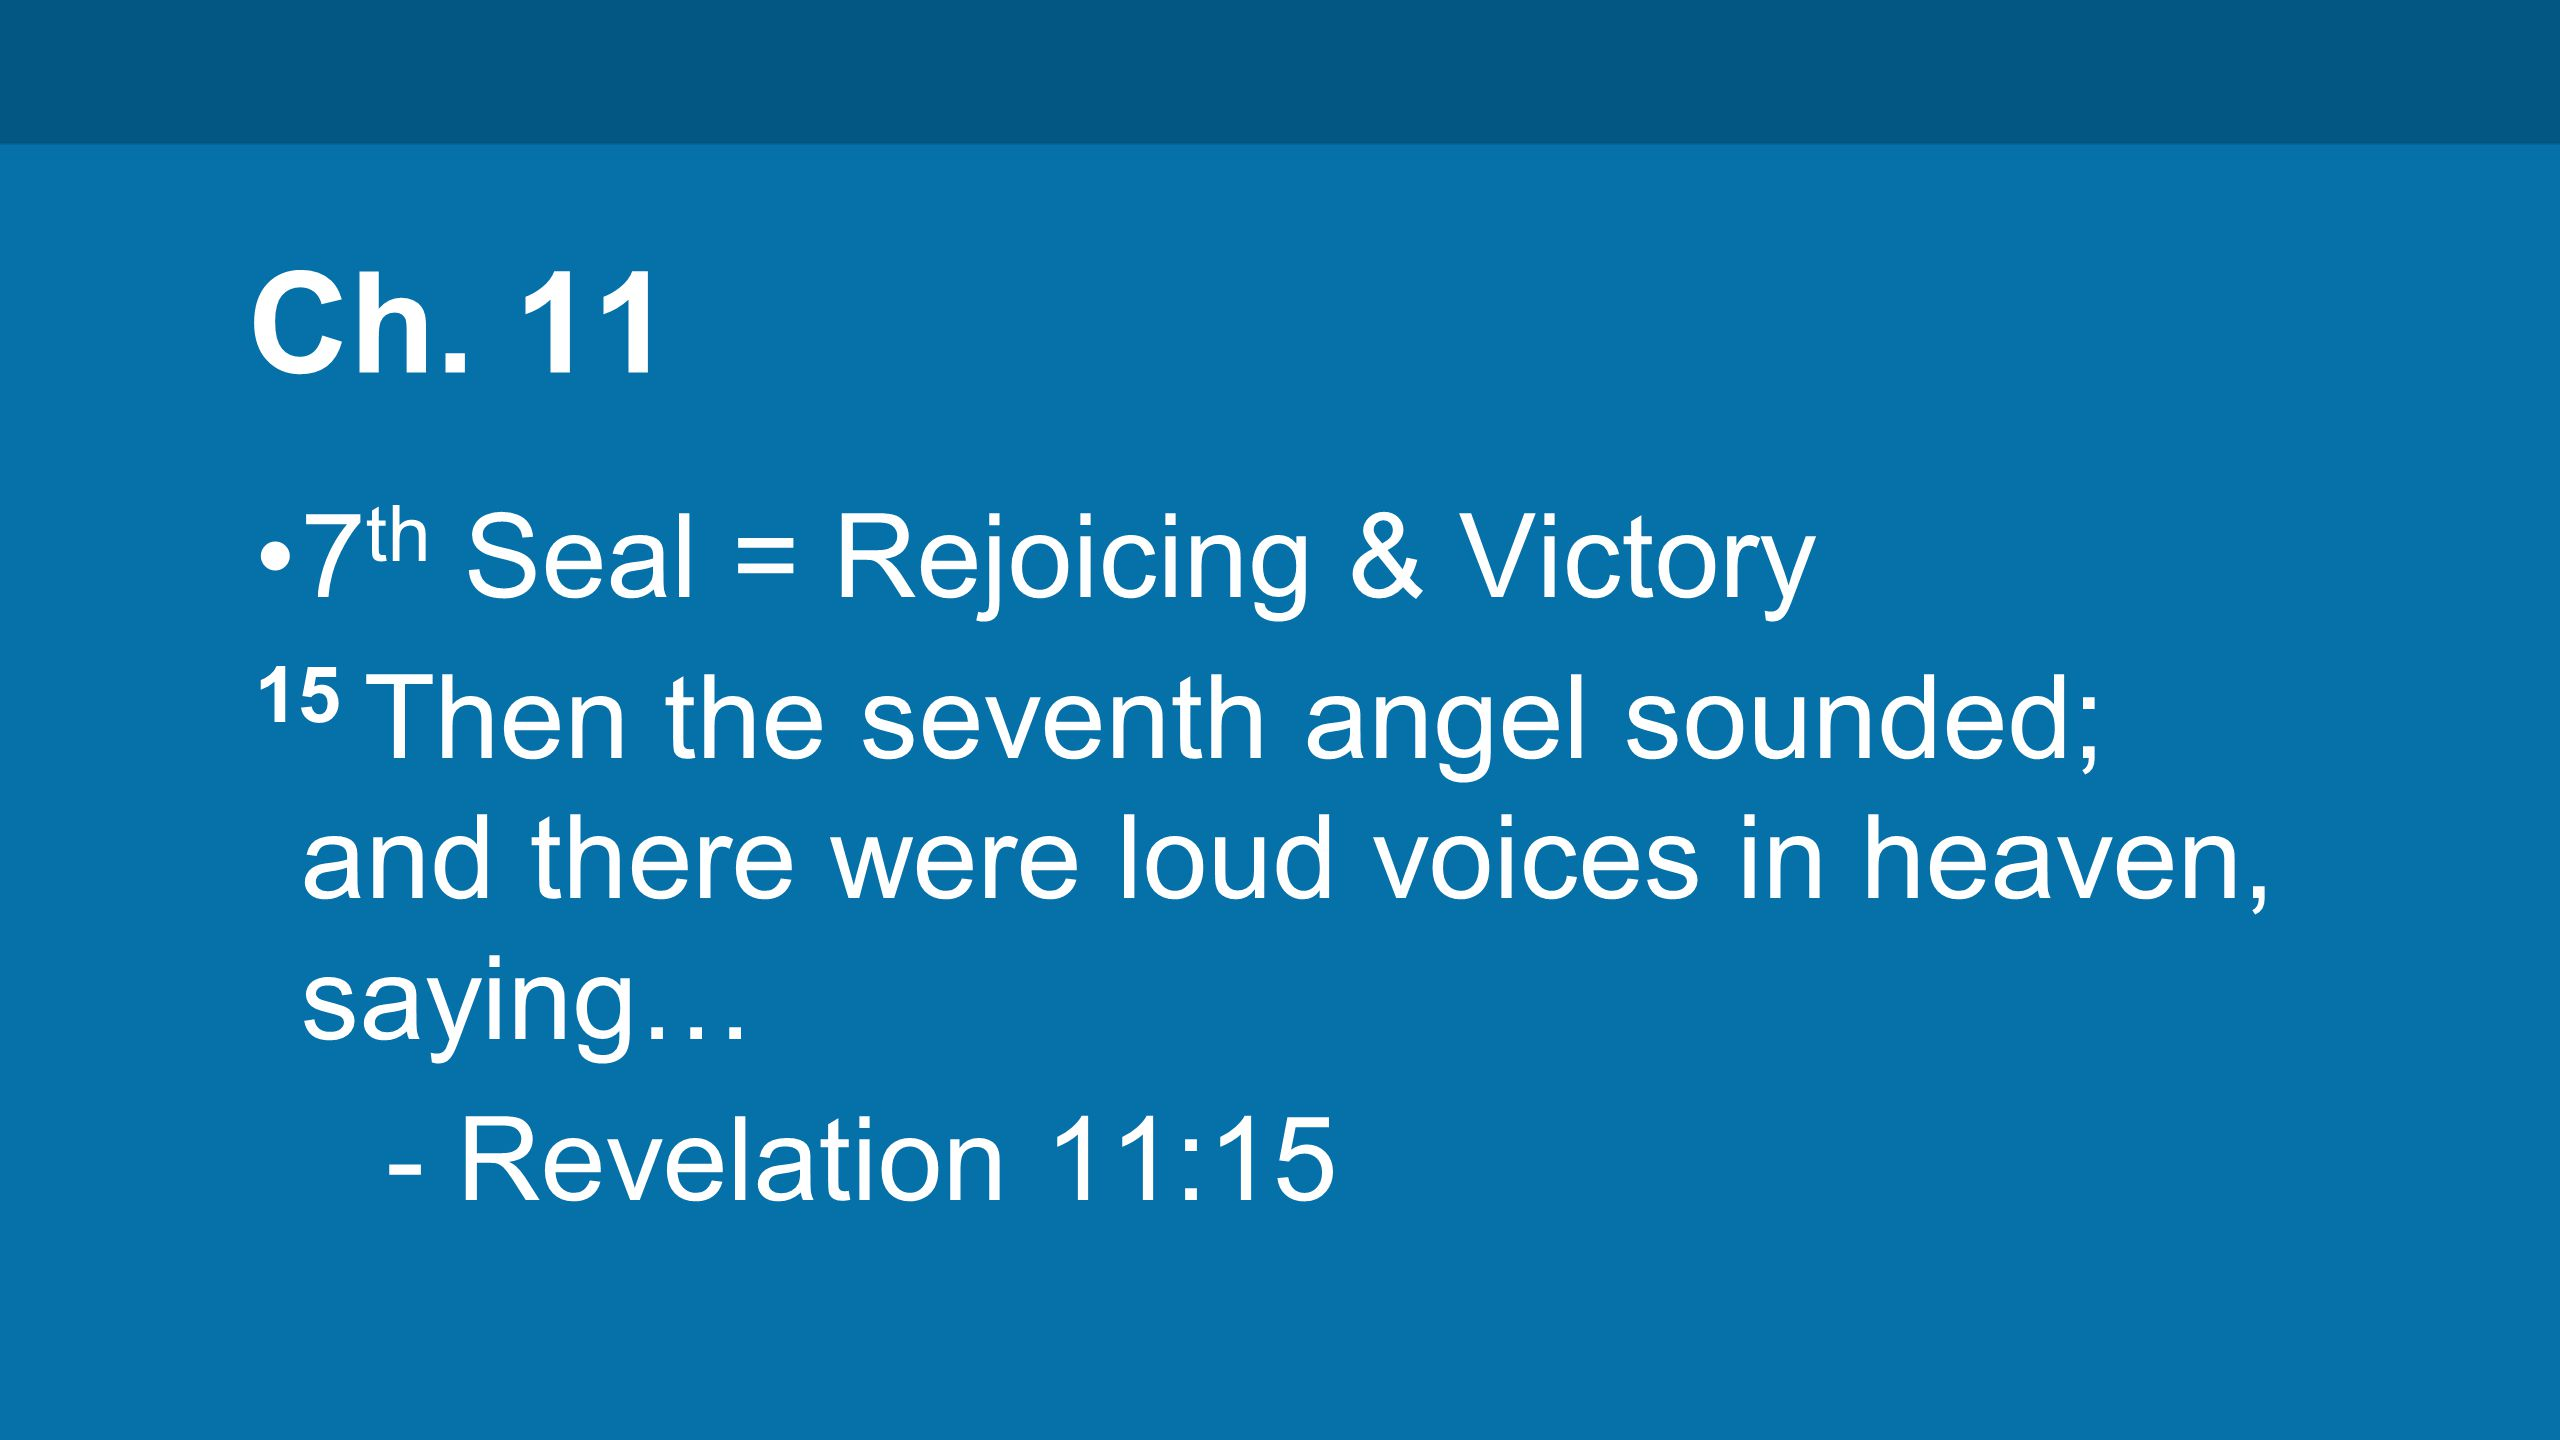 Ch. 11 7 th Seal = Rejoicing & Victory 15 Then the seventh angel sounded; and there were loud voices in heaven, saying… - Revelation 11:15